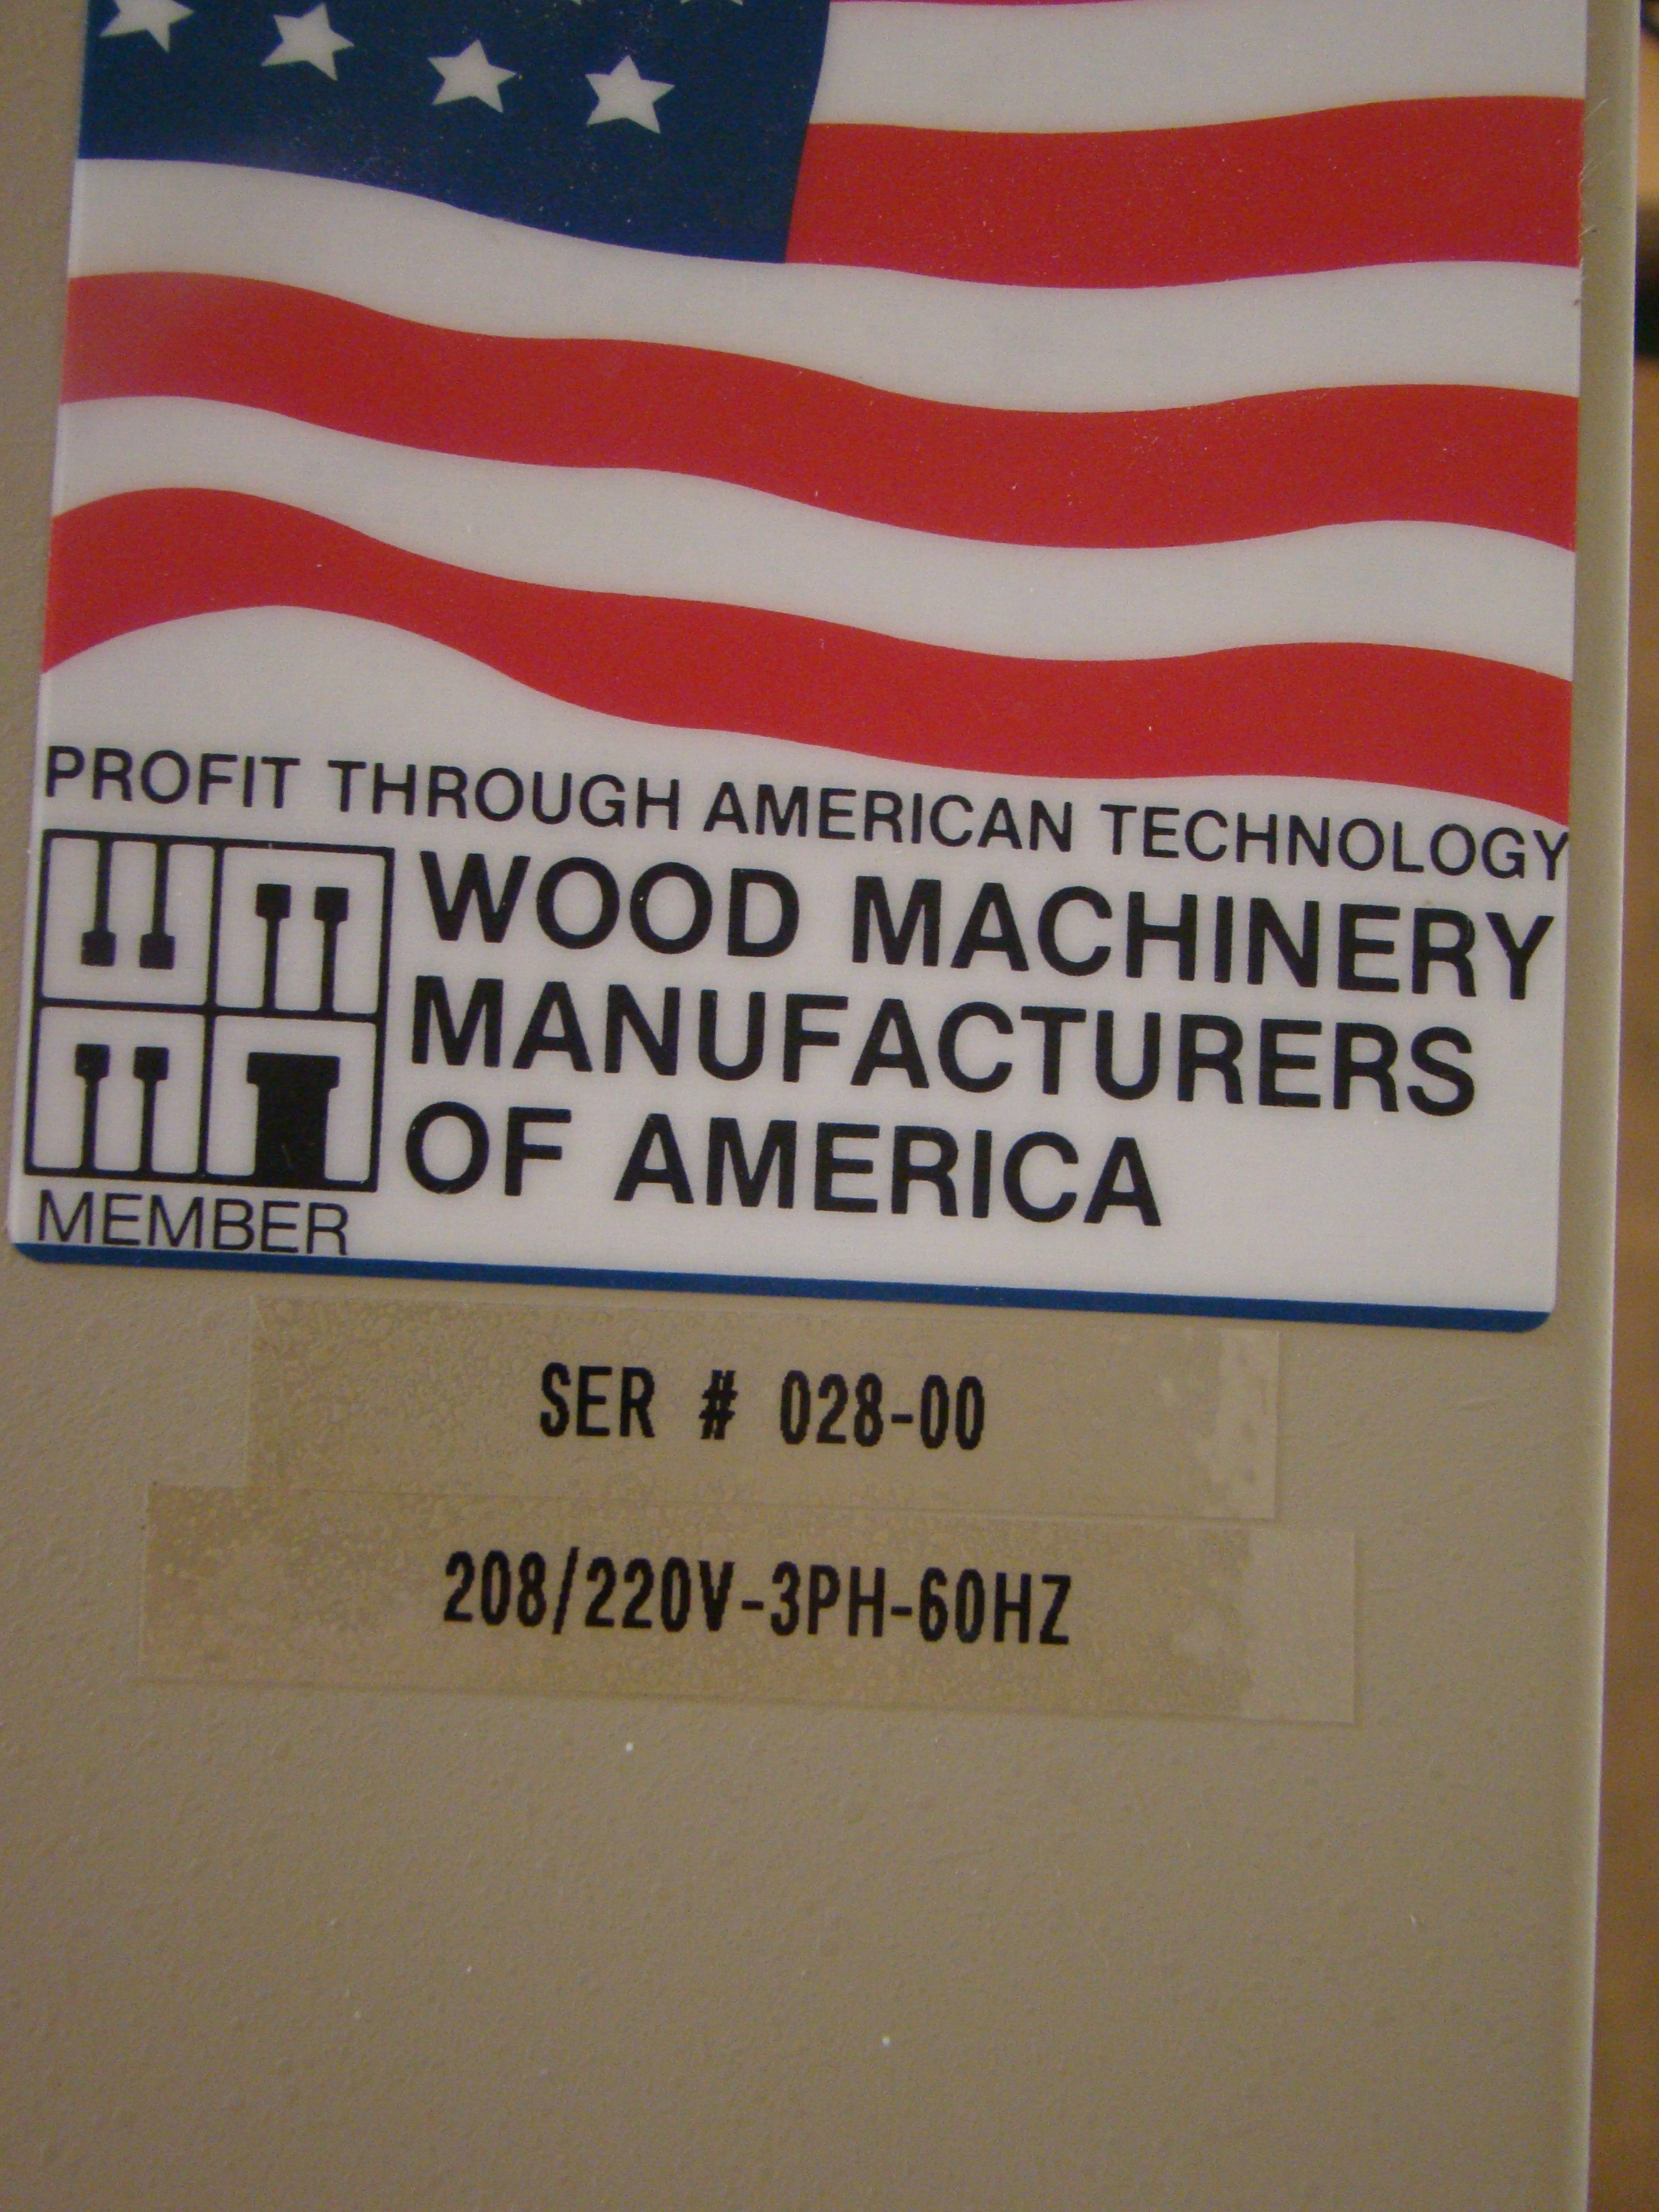 ACCU-Systems 366 Dowel Insertion Machine with Foot Pedal, Vibratory Bowl Feeders, Glue Pot 220 - Image 7 of 8